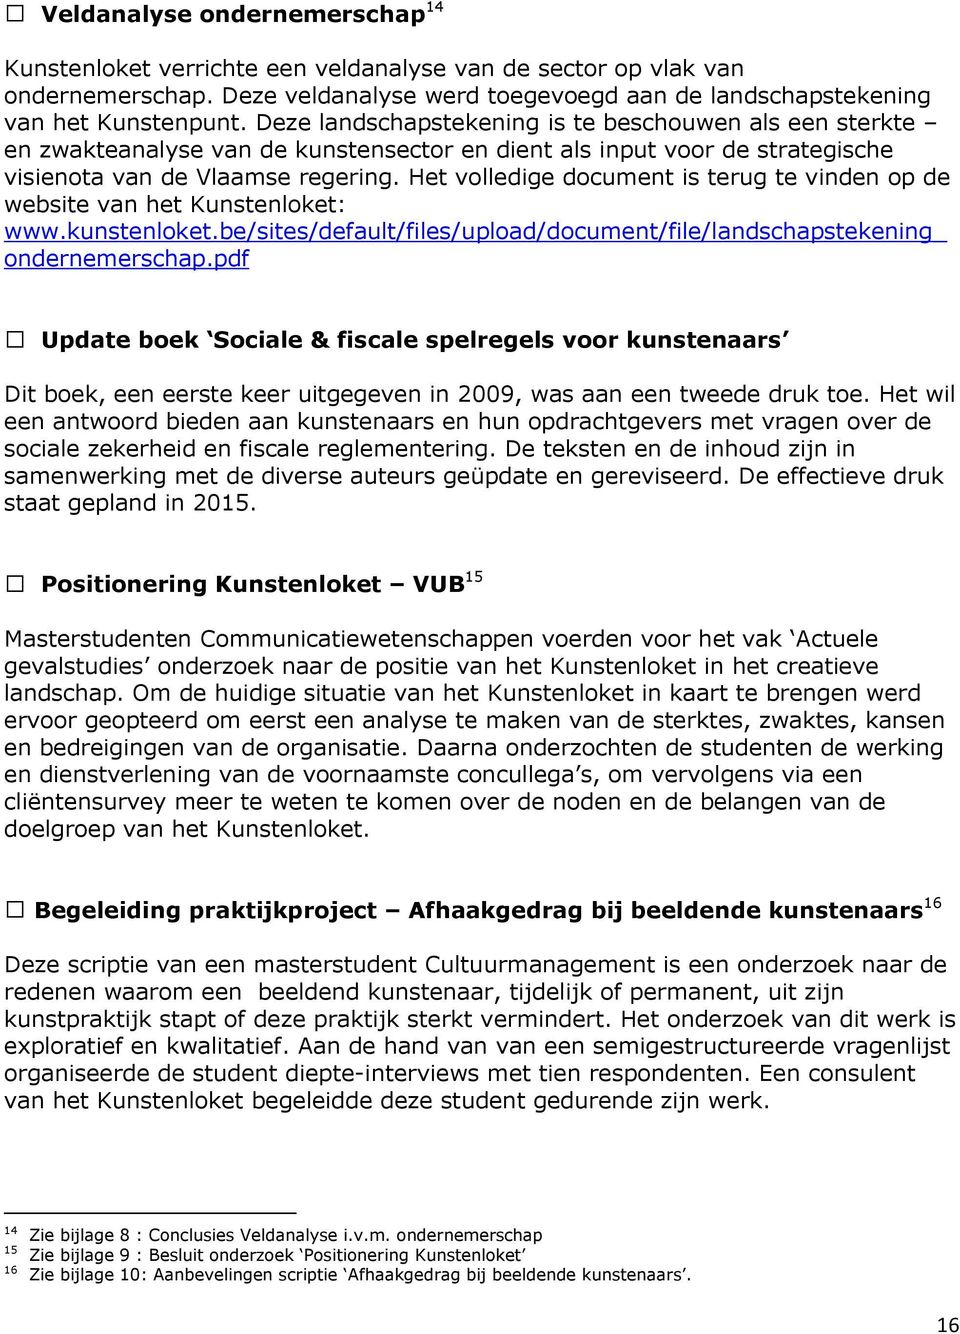 Het volledige document is terug te vinden op de website van het Kunstenloket: www.kunstenloket.be/sites/default/files/upload/document/file/landschapstekening_ ondernemerschap.